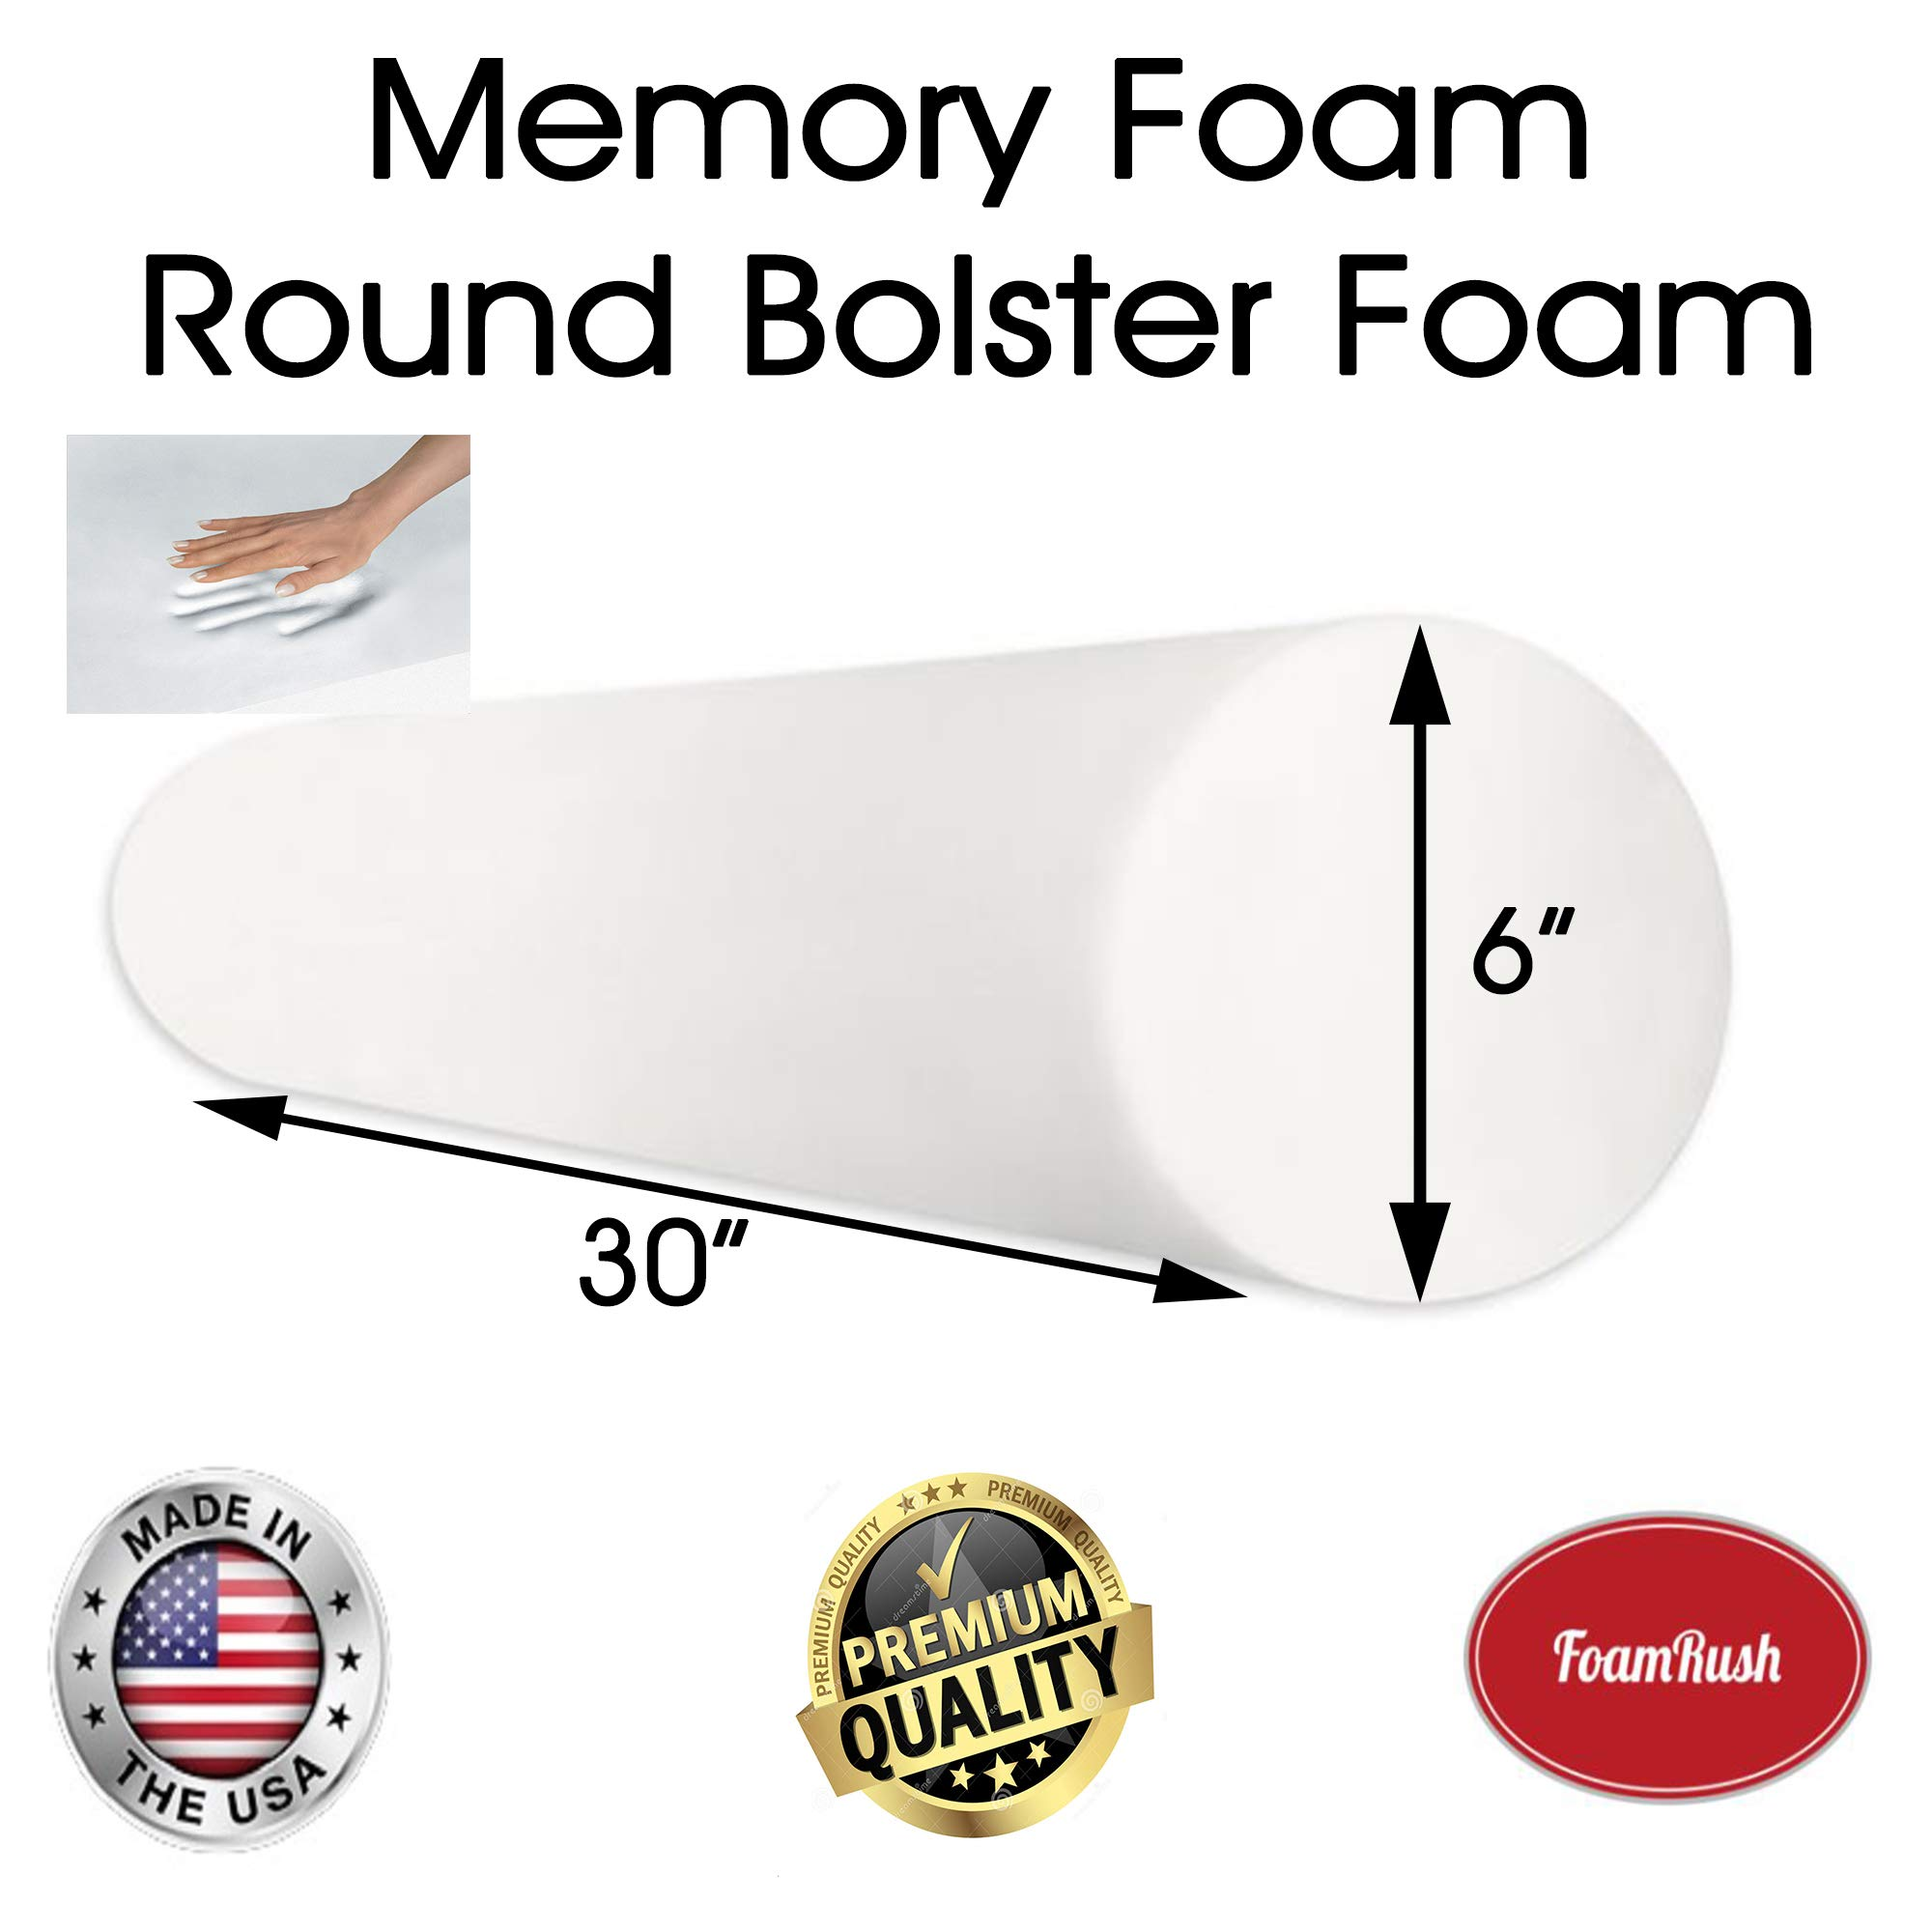 FoamRush 6'' Diameter x 30'' Long Premium Quality Round Bolster Memory Foam Roll Insert Replacement (Ideal for Home Accent Décor Positioning and General Fitness) Made in USA